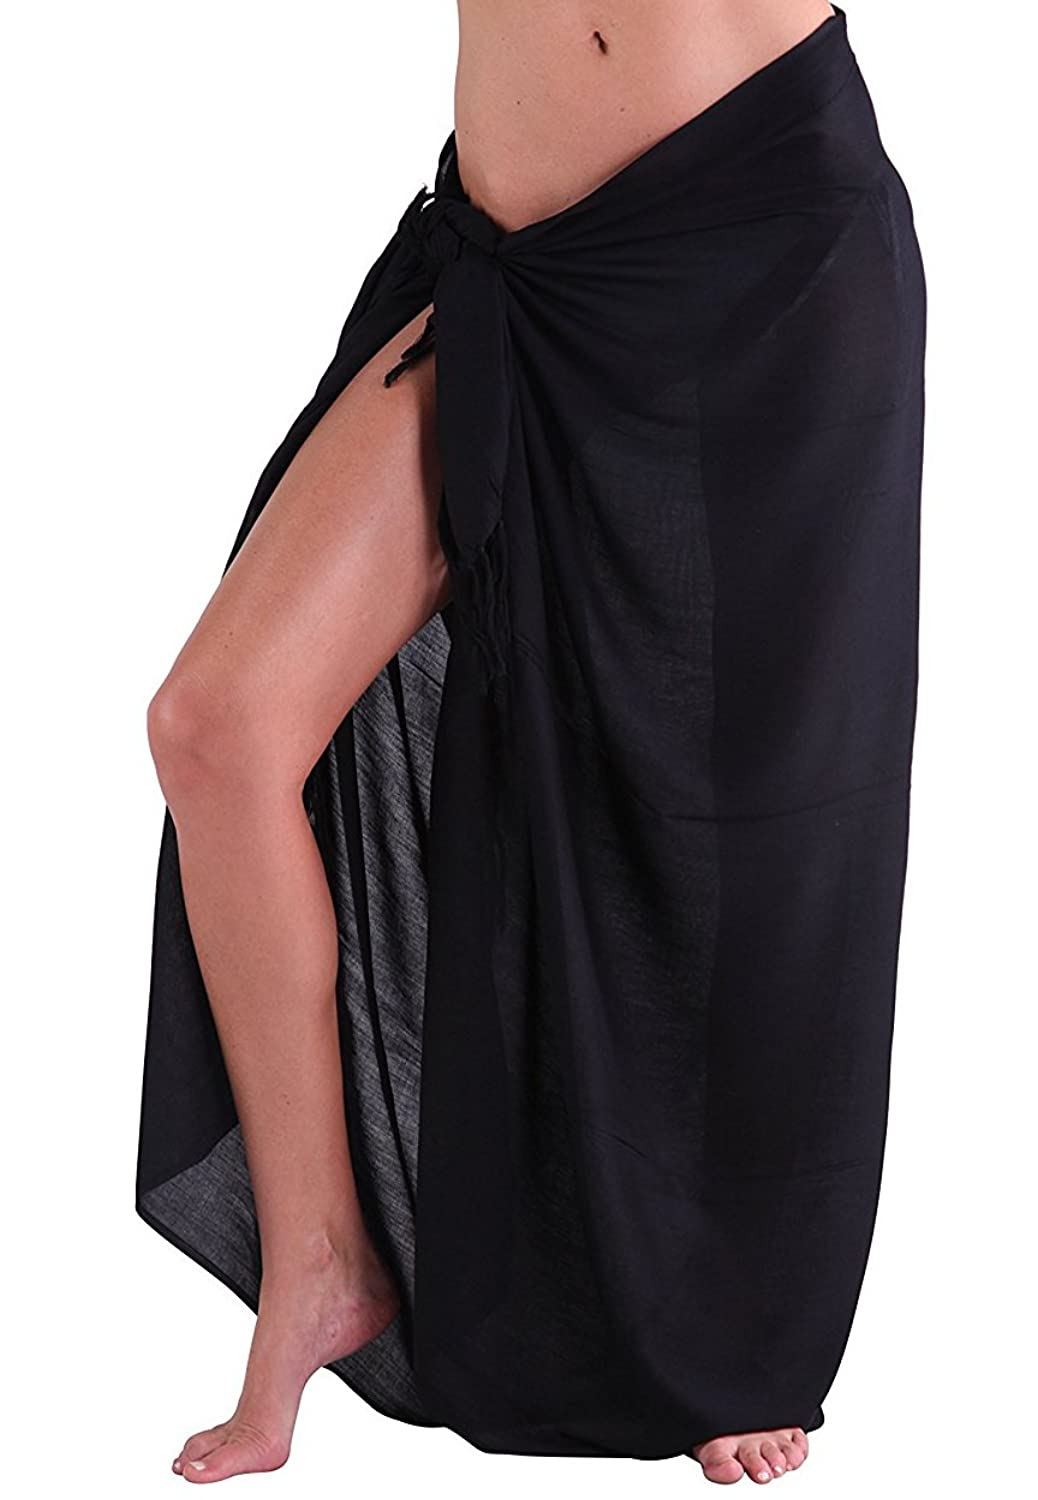 f2edb3ceb16e9 Online Cheap wholesale Oryer Womens Sarong Wrap Beach Sarong Chiffon  Swimwear Cover up Swimsuit Wrap Cover-Ups Suppliers